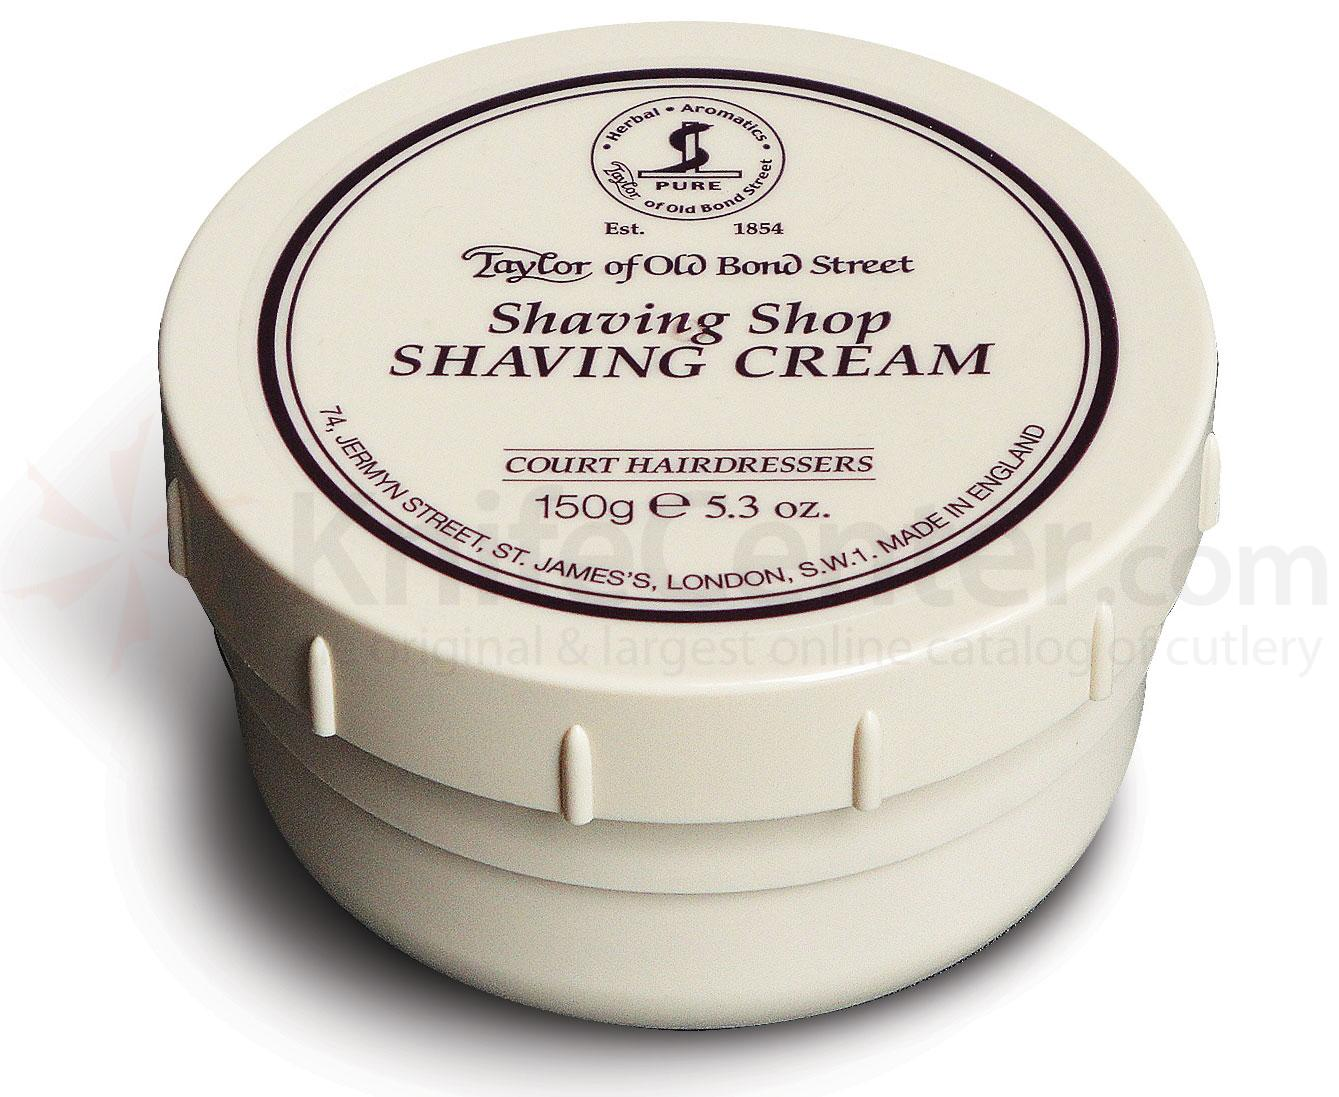 Taylor of Old Bond Street Shaving Shop Shaving Cream 5.3 oz (150g)